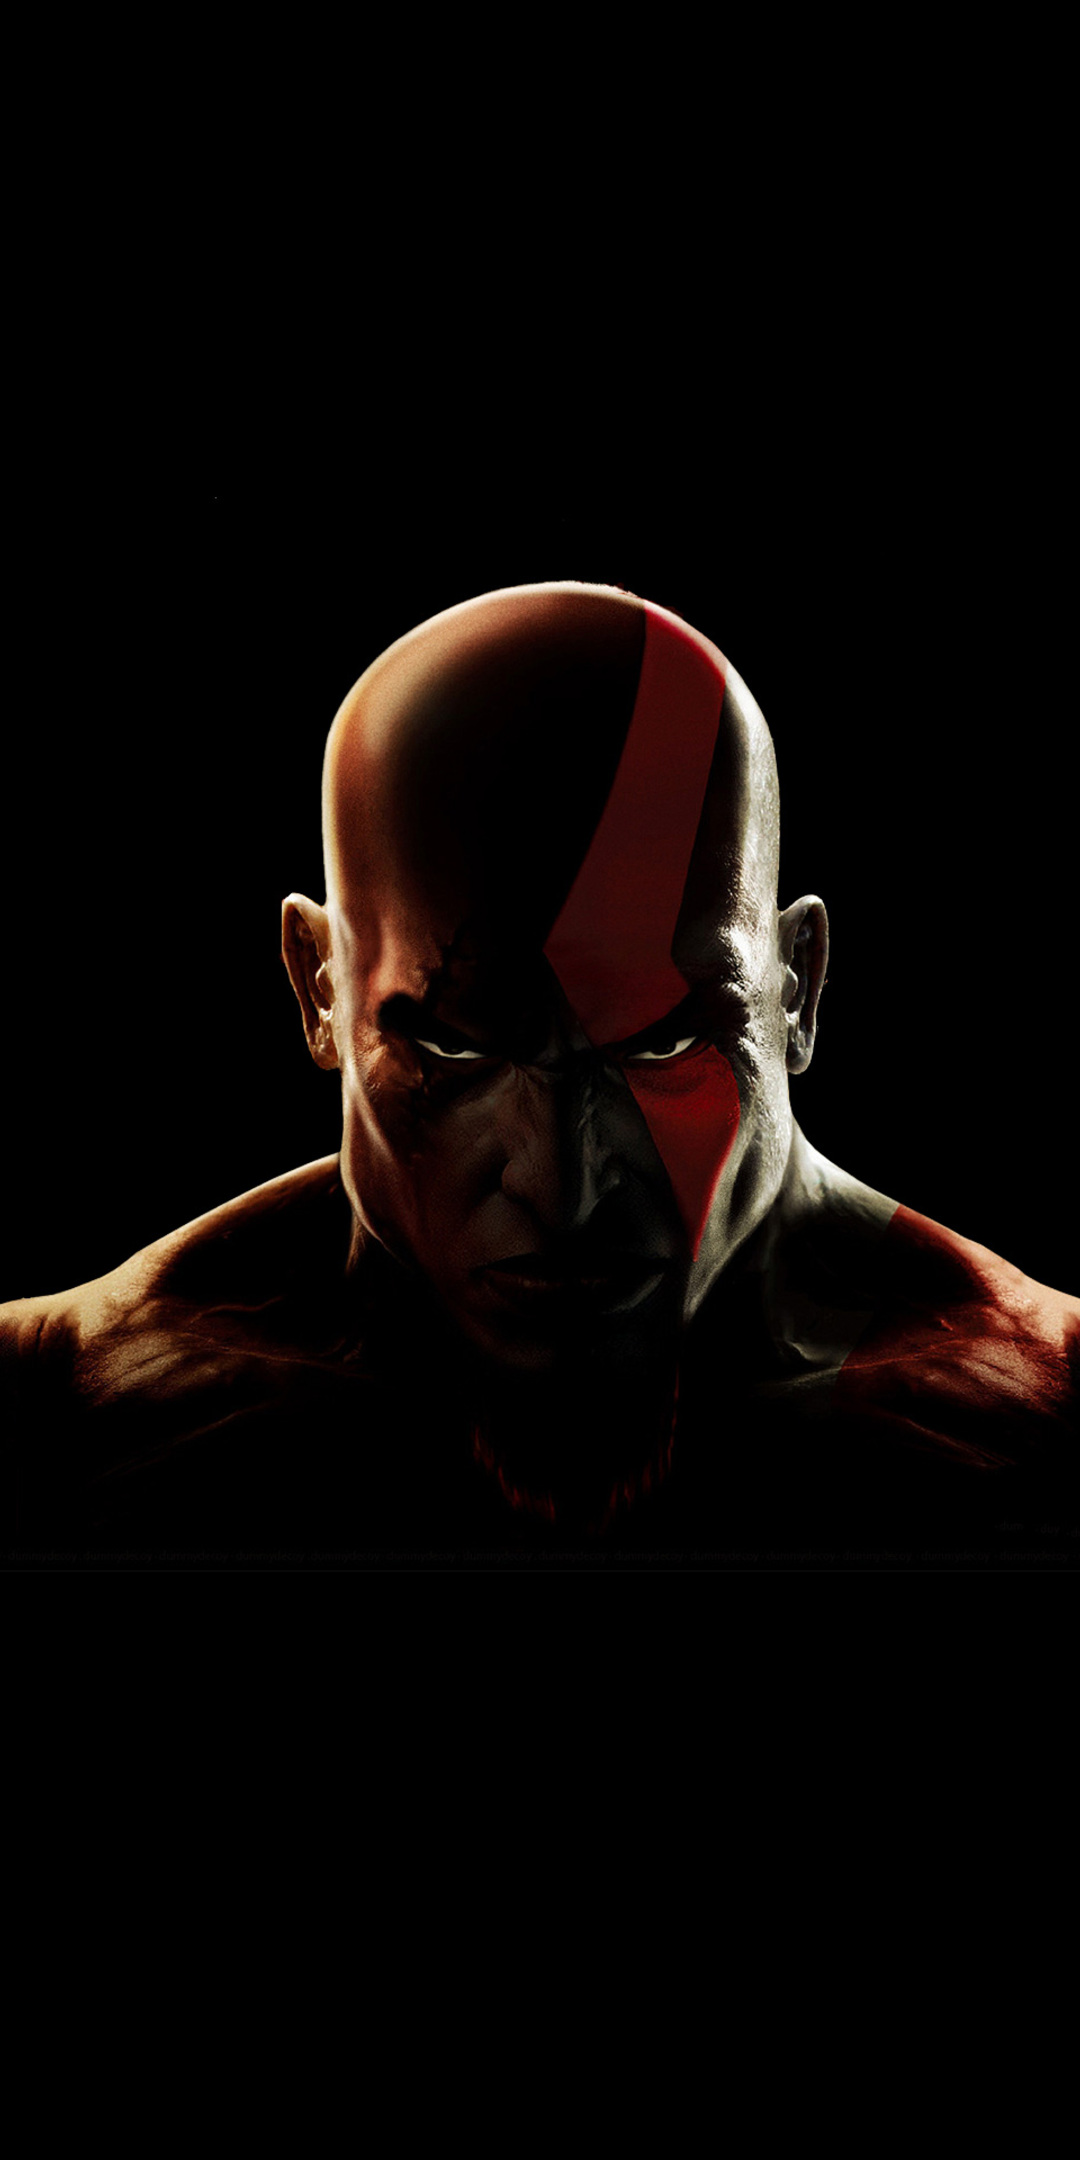 kratos-god-of-war-warrior-8f.jpg